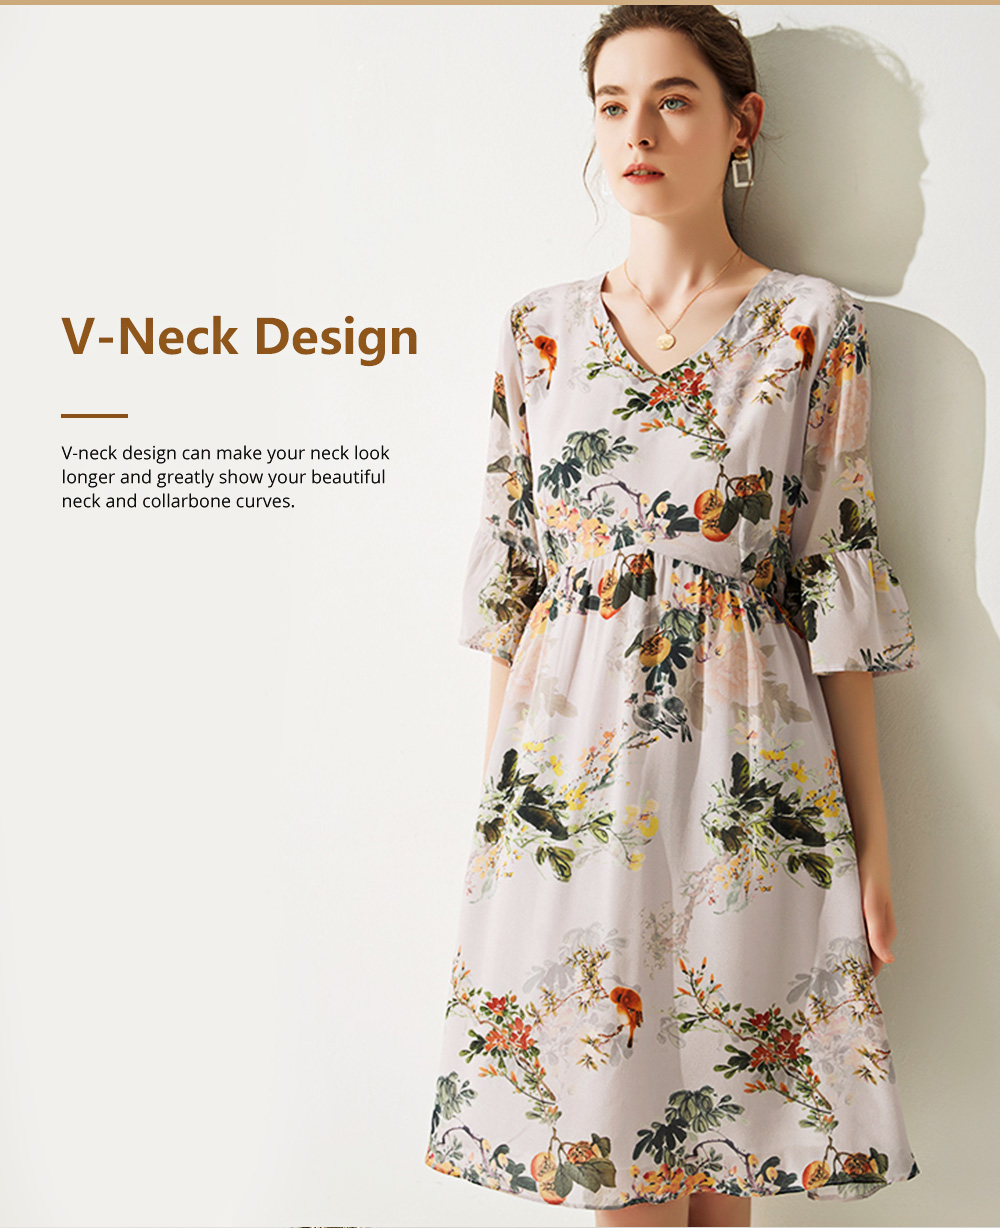 Elegant Fancy Stylish Flower Painting V-neck High-waist Three Quarter Falbala Sleeve Dress Atmosphere A-Type Ladies Dress 2